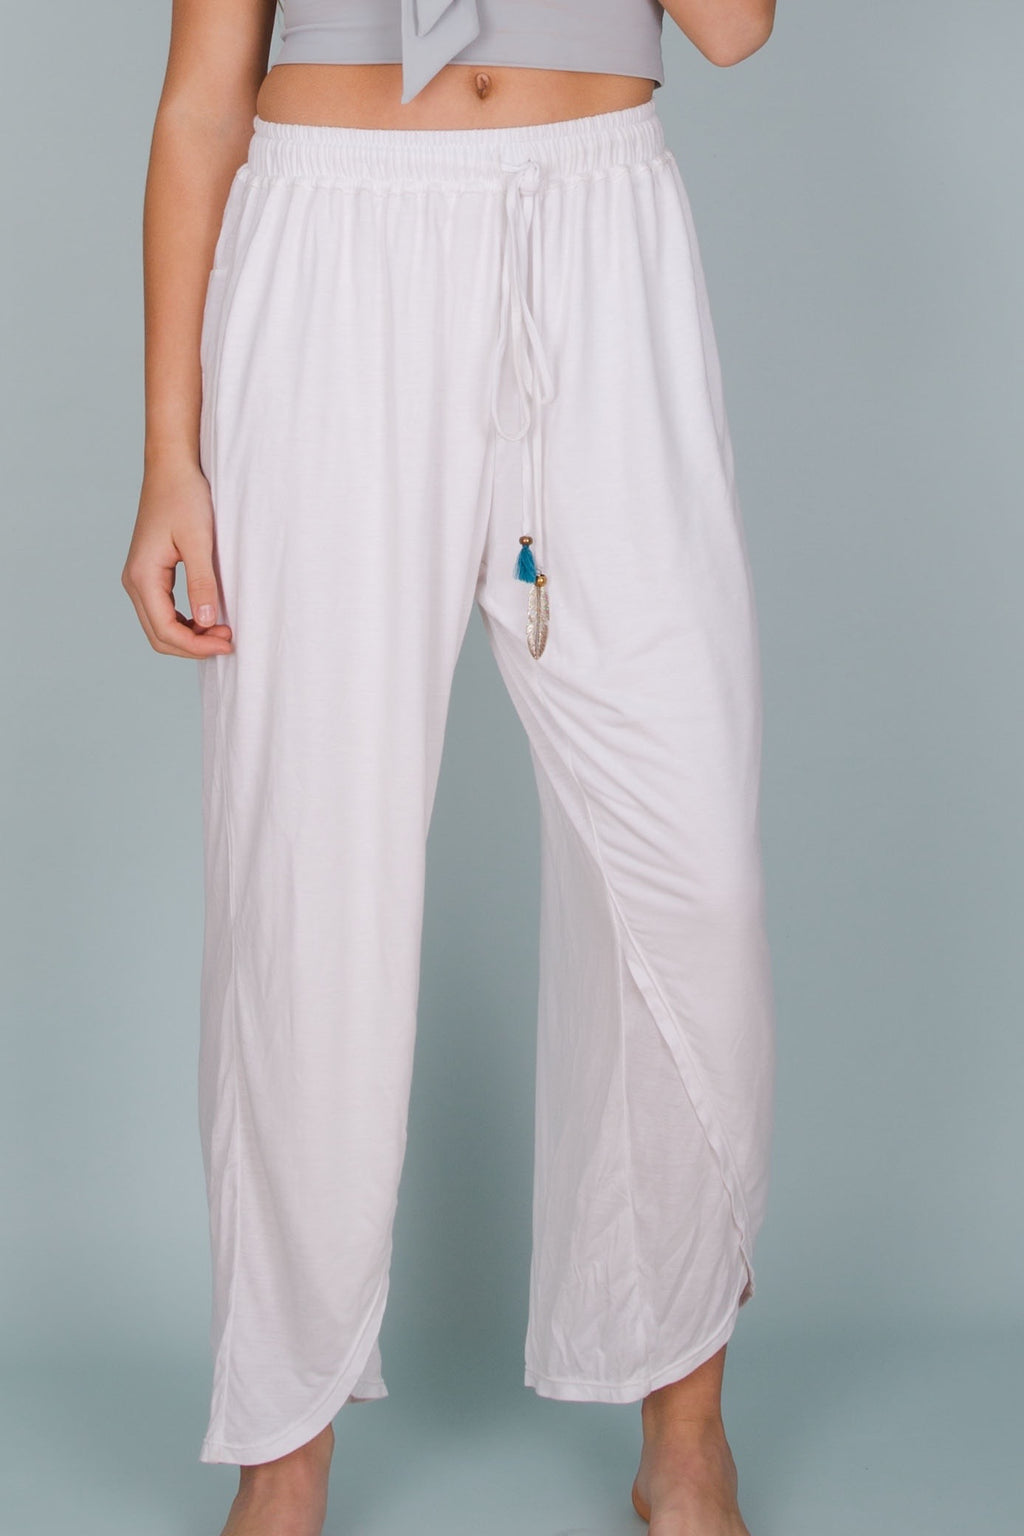 Front View Loose fitting white Ellis Pants by Hamec Spirit